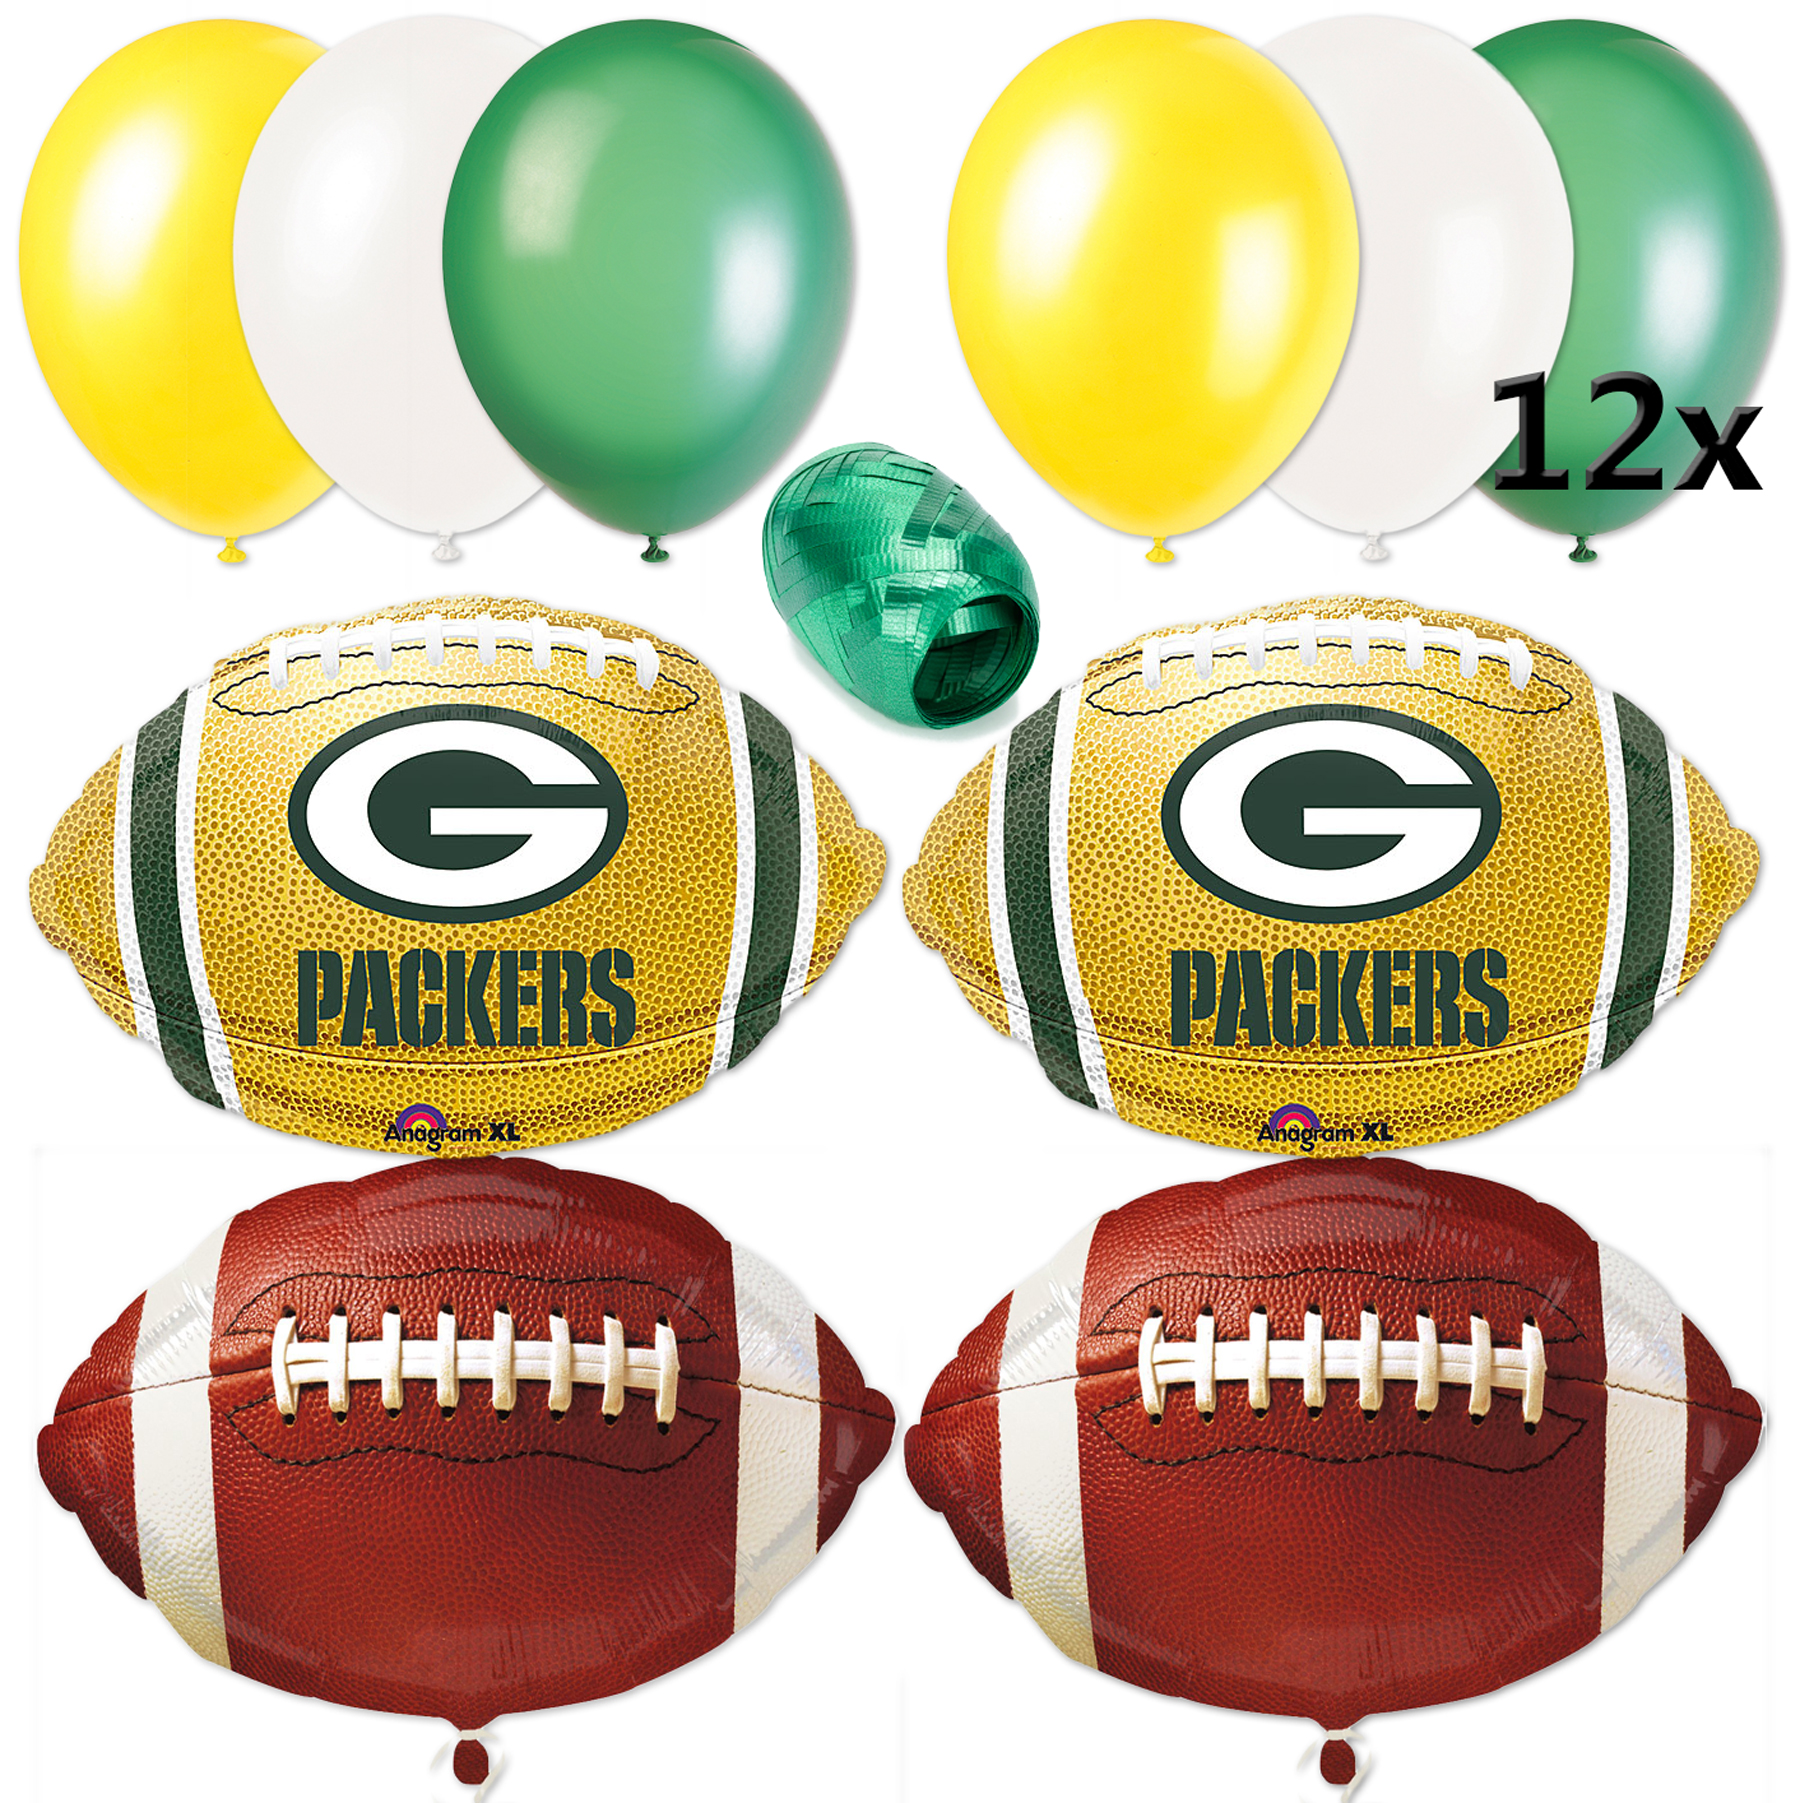 Green Bay Packers NFL Playoffs Football Balloon Decorating Party Pack 17pc